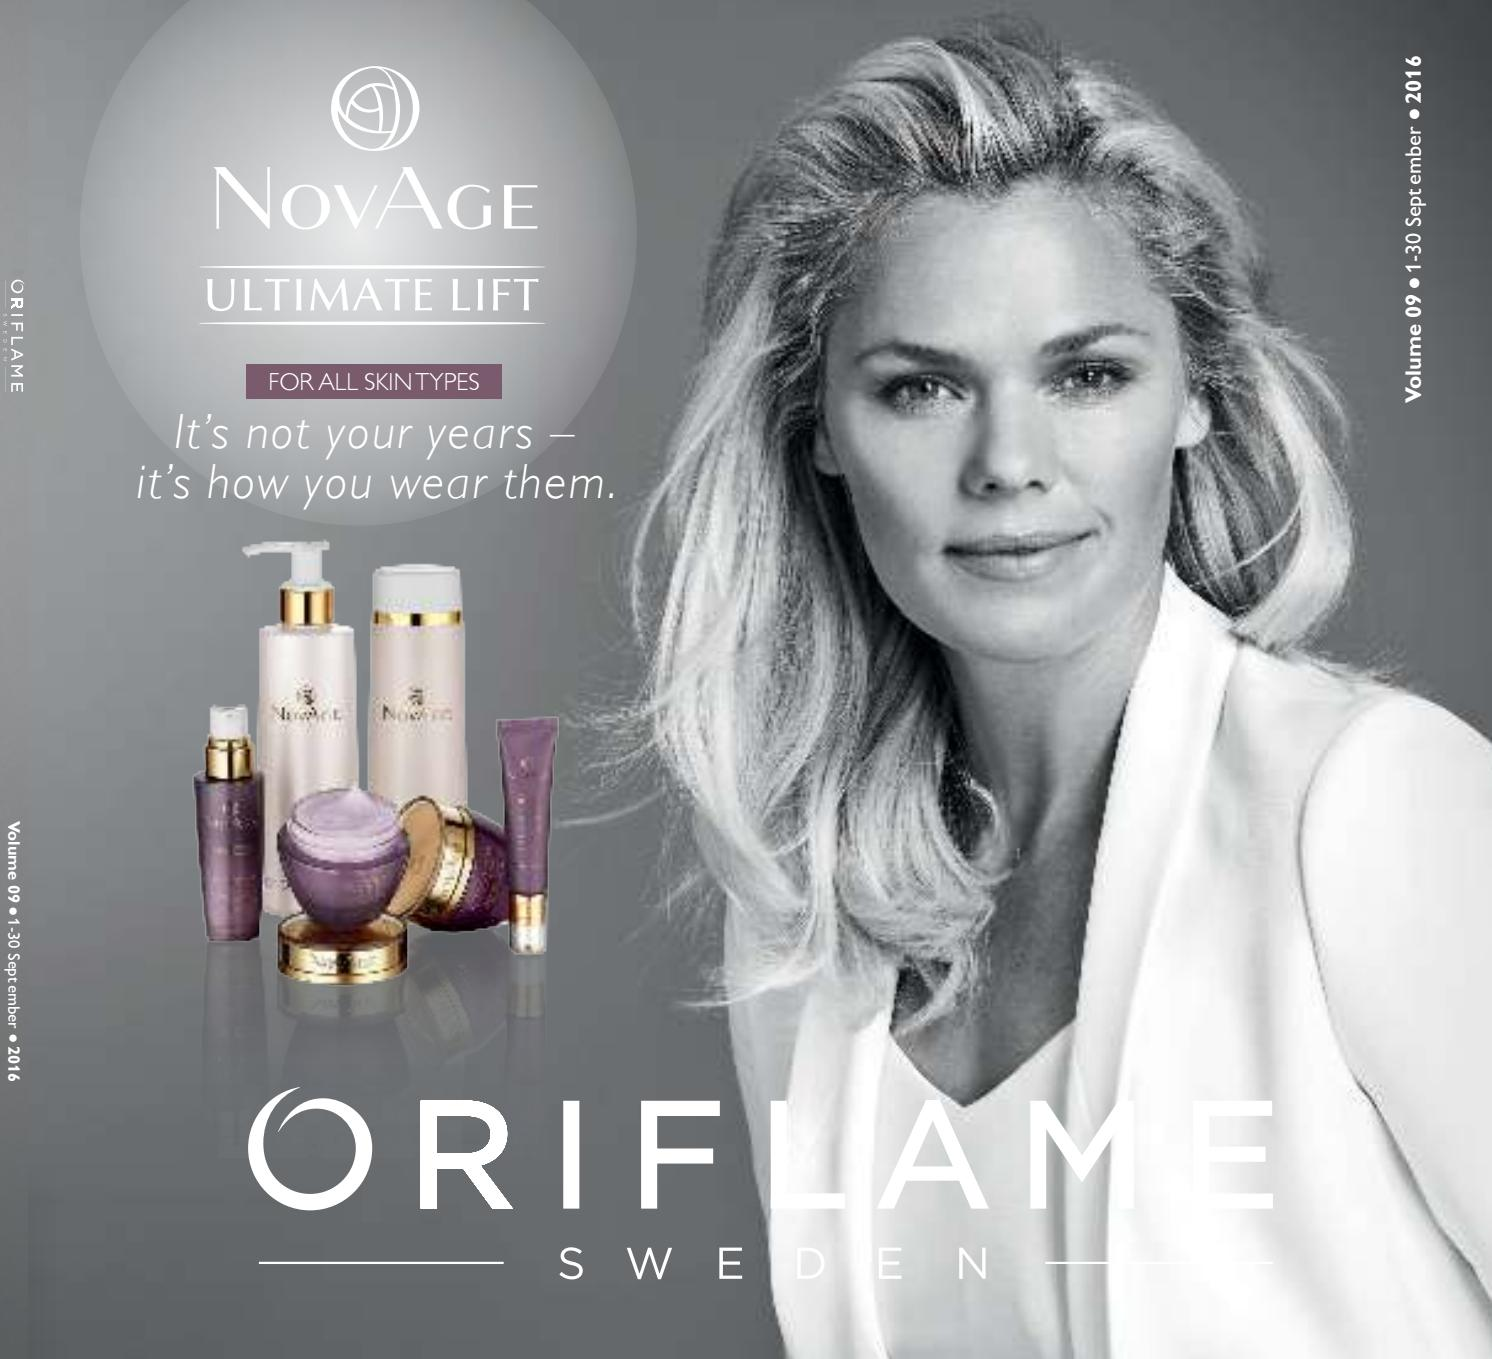 Oriflame INDIA line Catalogue 9 2016 by Reprezentant Produse Cosmetice issuu